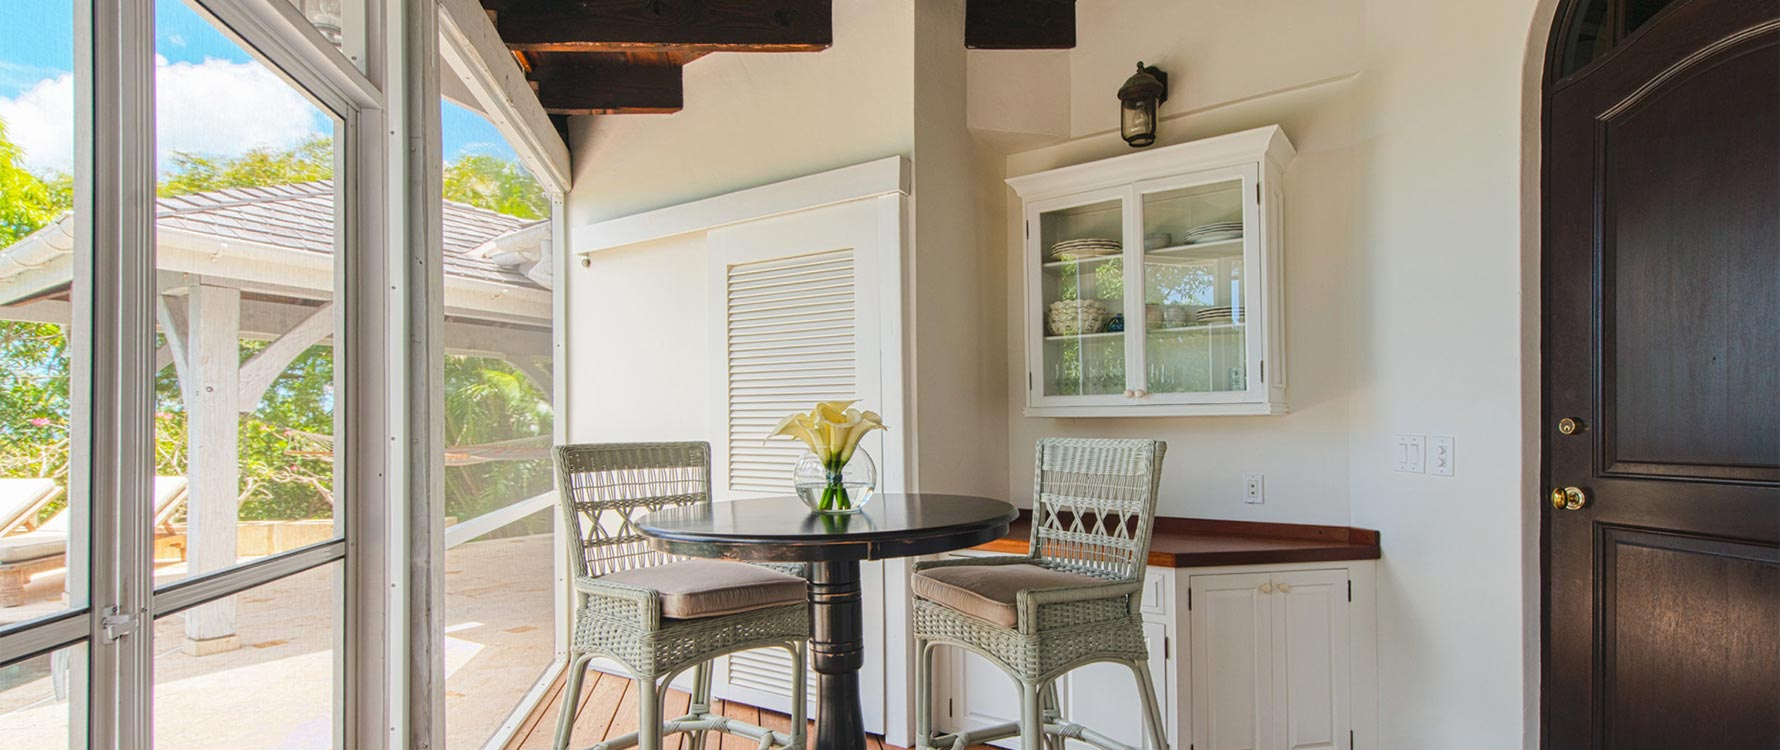 Entry veranda with kitchenette & laundry facilities